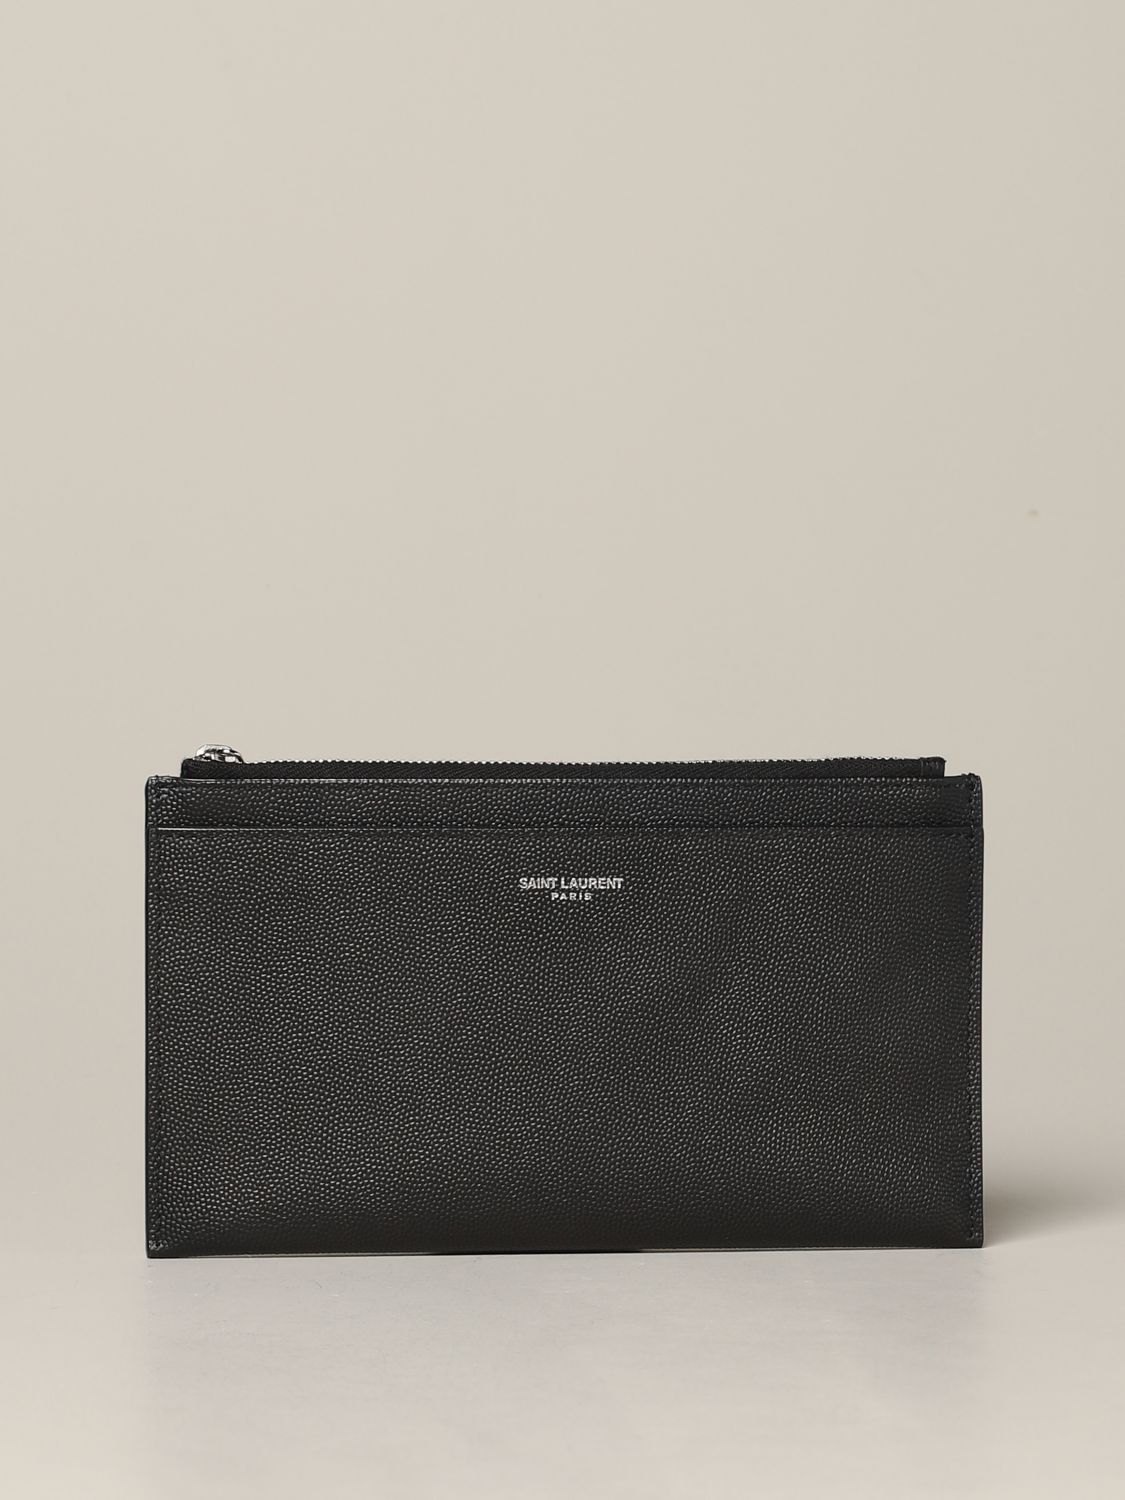 Mini Saint Laurent clutch in micro textured leather black 1